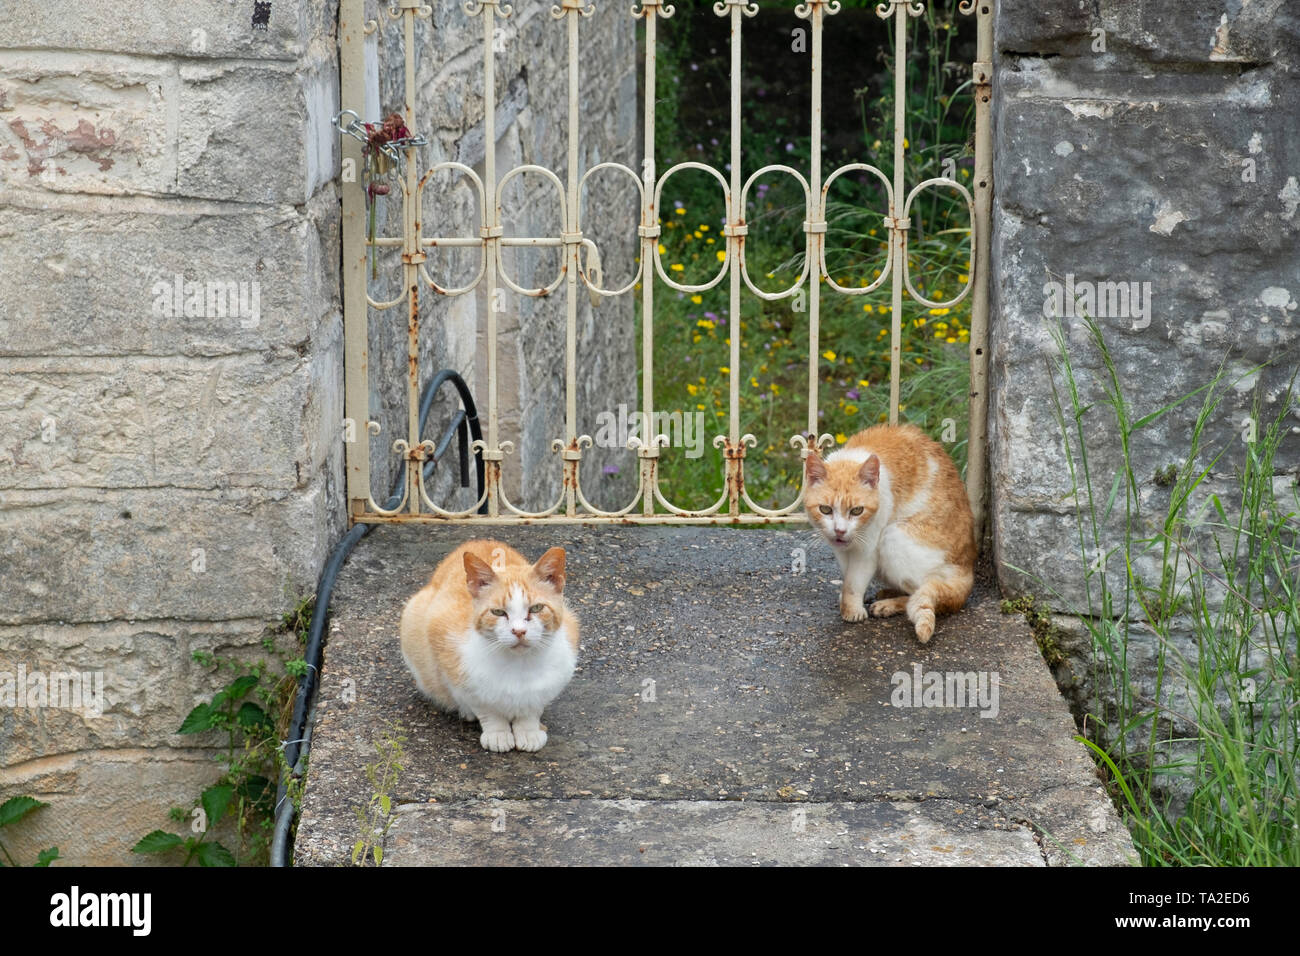 Feral cats in Vathy, Ithaca, Greece. Ithaca, Ithaki or Ithaka is a Greek island located in the Ionian Sea to the west of continental Greece. Ithacas main island has an area of 96 square kilometres. It is the second-smallest of seven main Ionian Islands. Greece and the Greek islands are inundated with stray, abandoned and feral cats. The majority of them are born in the spring and survive through the kindness of people who feed them. - Stock Image